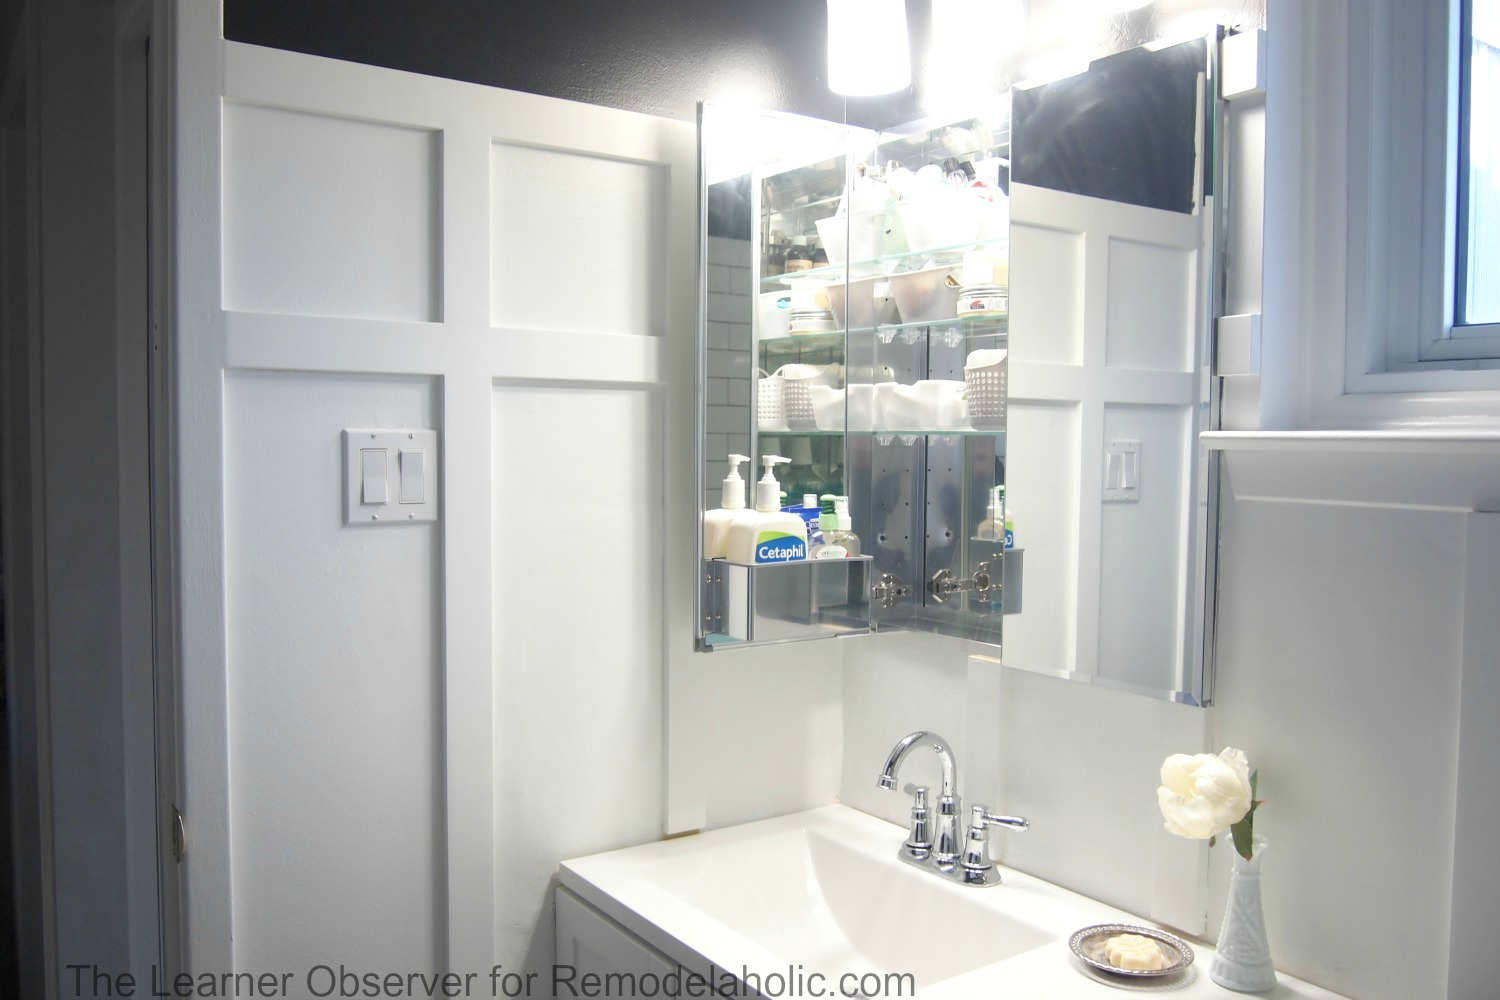 The Learner Observer For Remodelaholic.com   Built In Medicine Cabinet